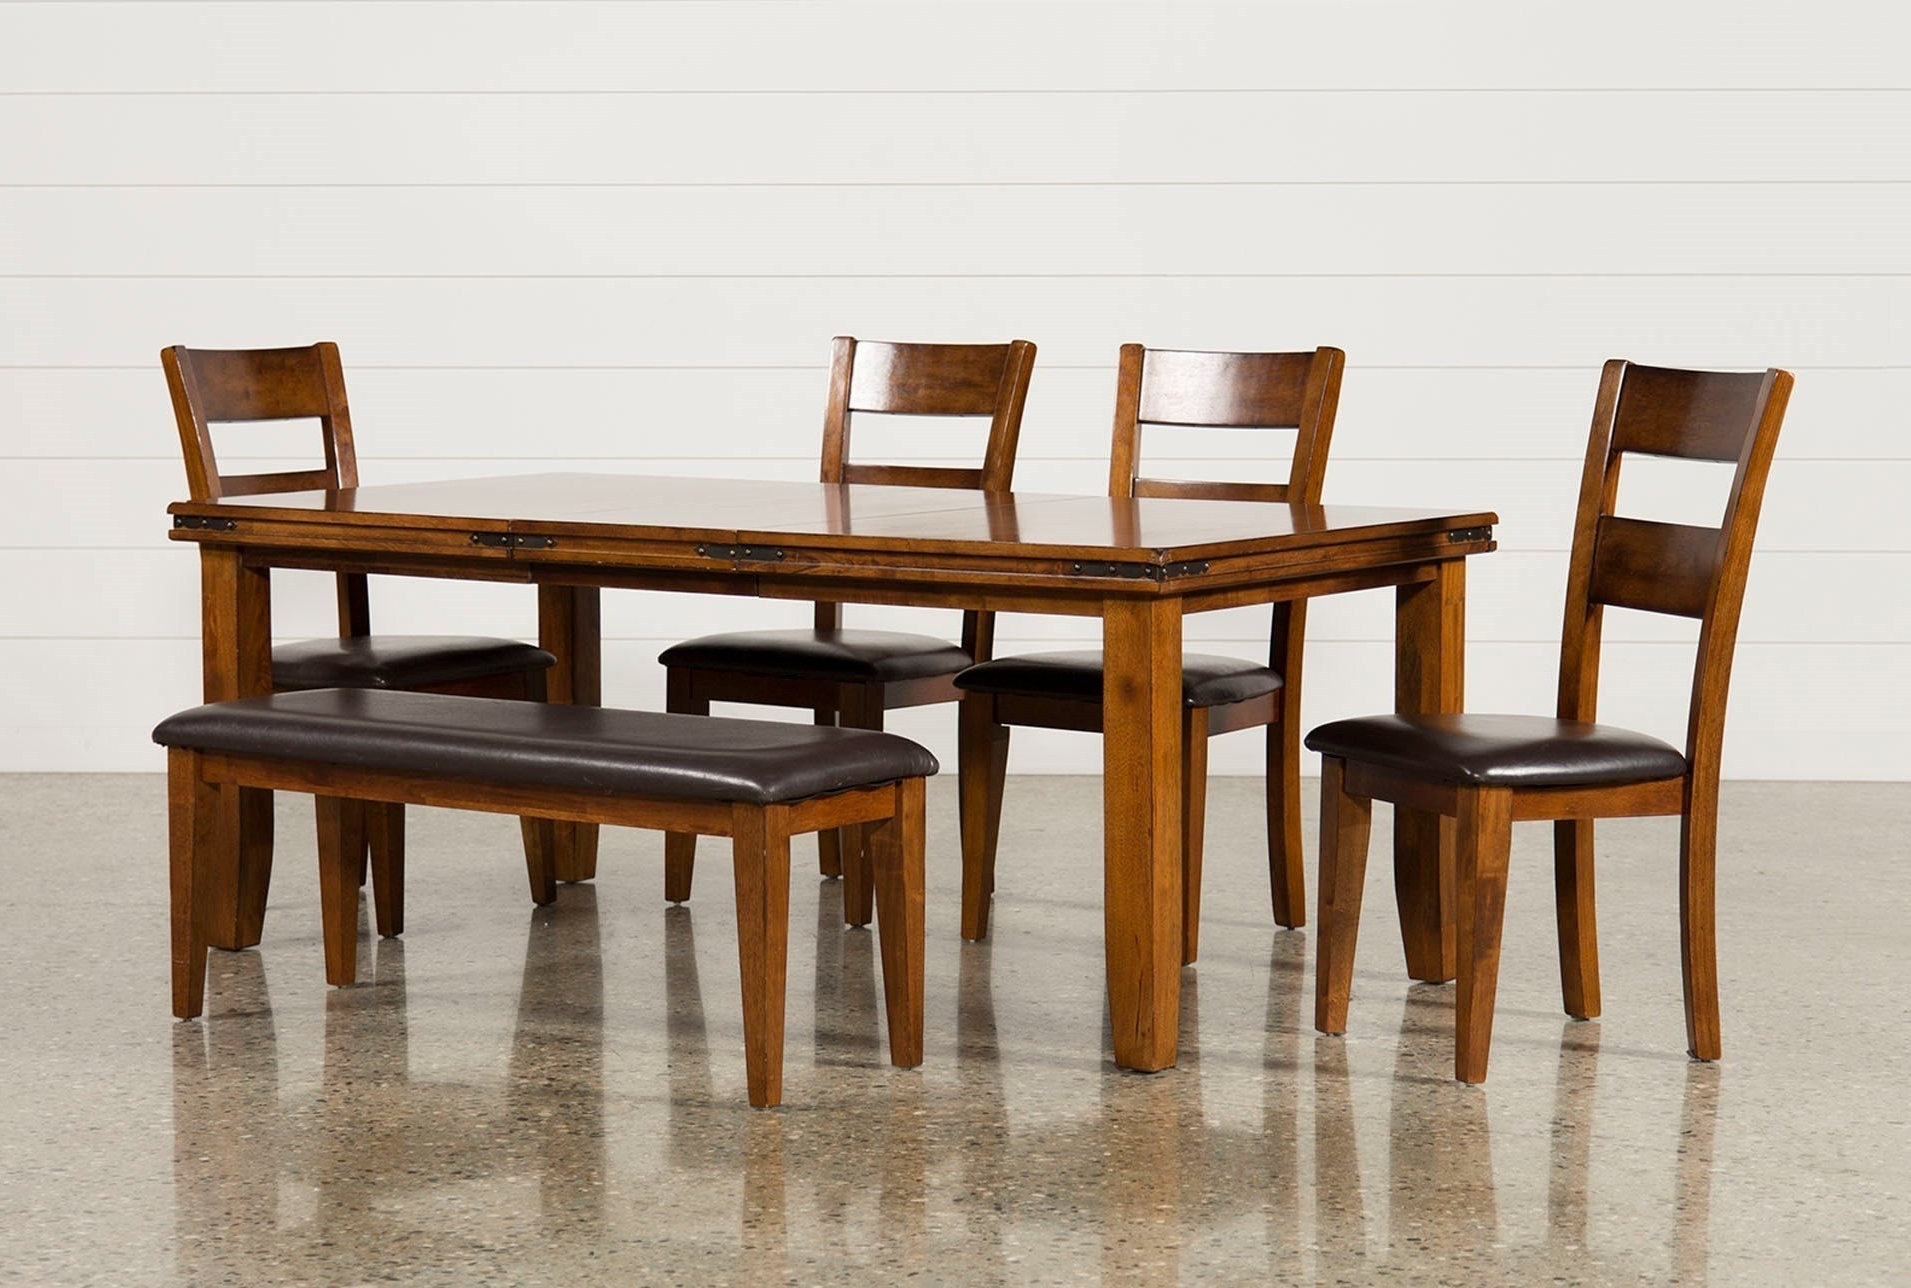 Chapleau Ii 7 Piece Extension Dining Table Sets Regarding Most Current Lancaster 6 Piece Dining Set Residence Decor On Living Spaces Dining (View 19 of 25)